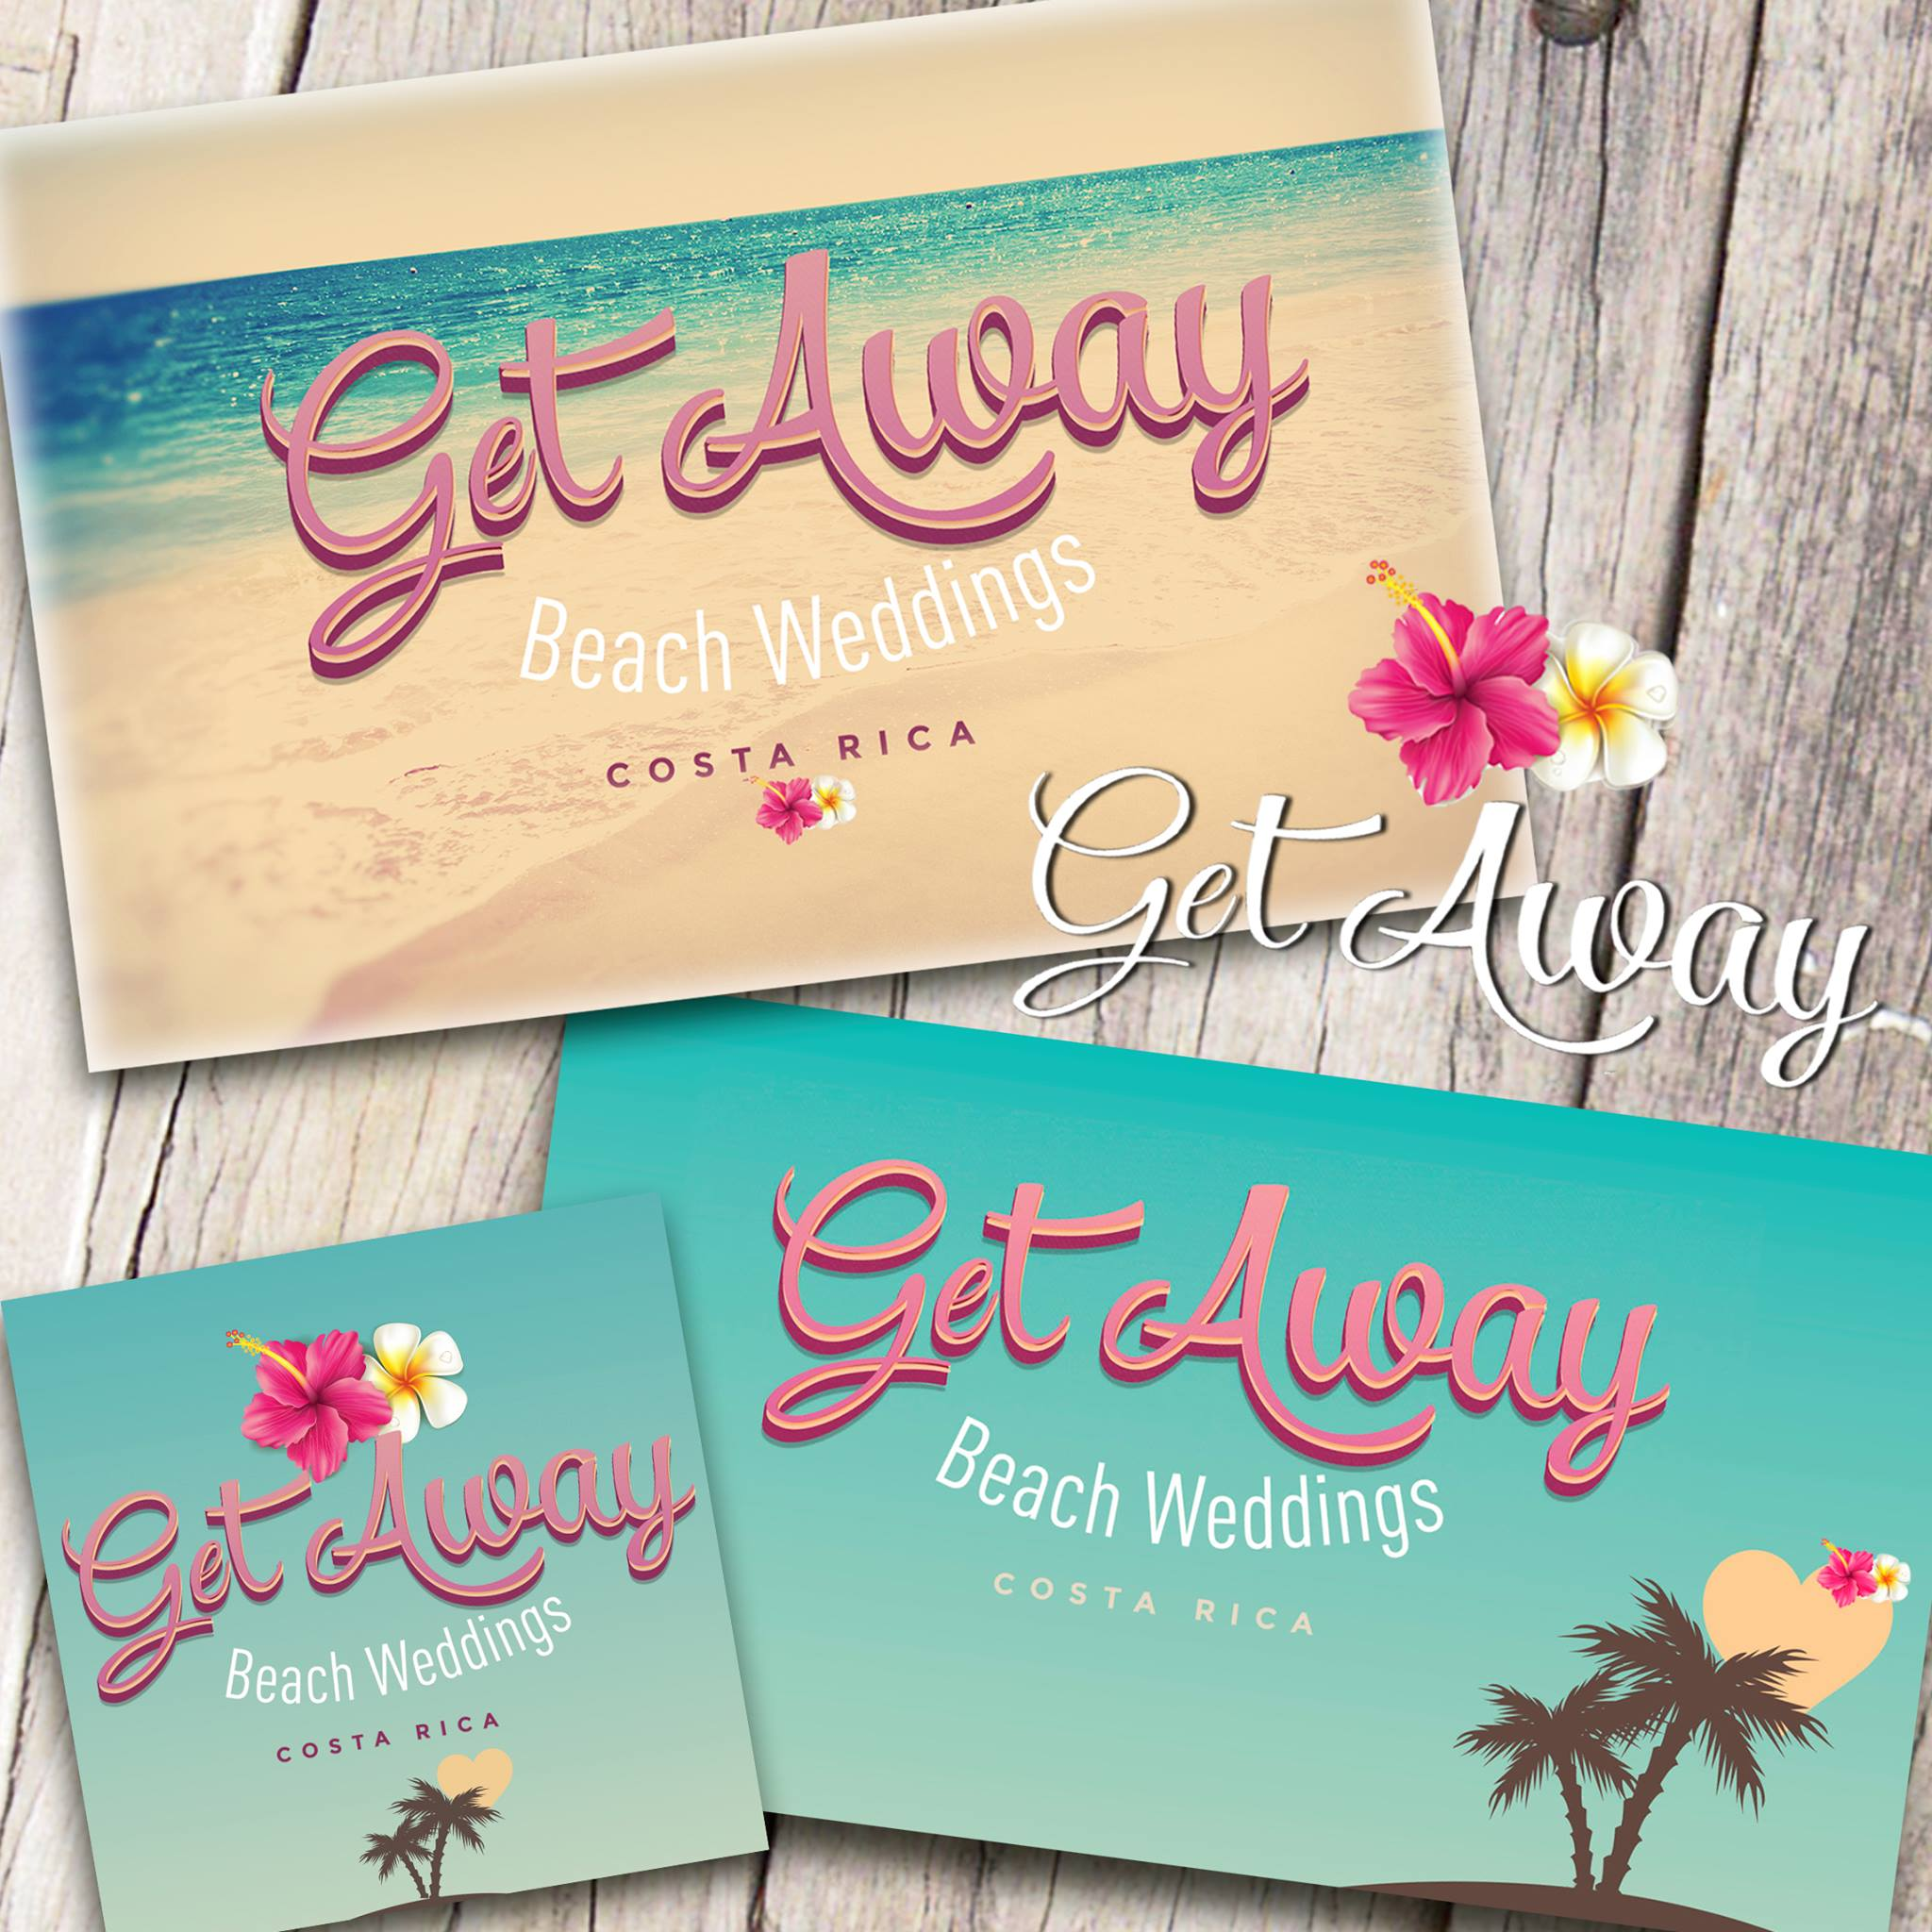 Branding - Get Away Beach Weddings